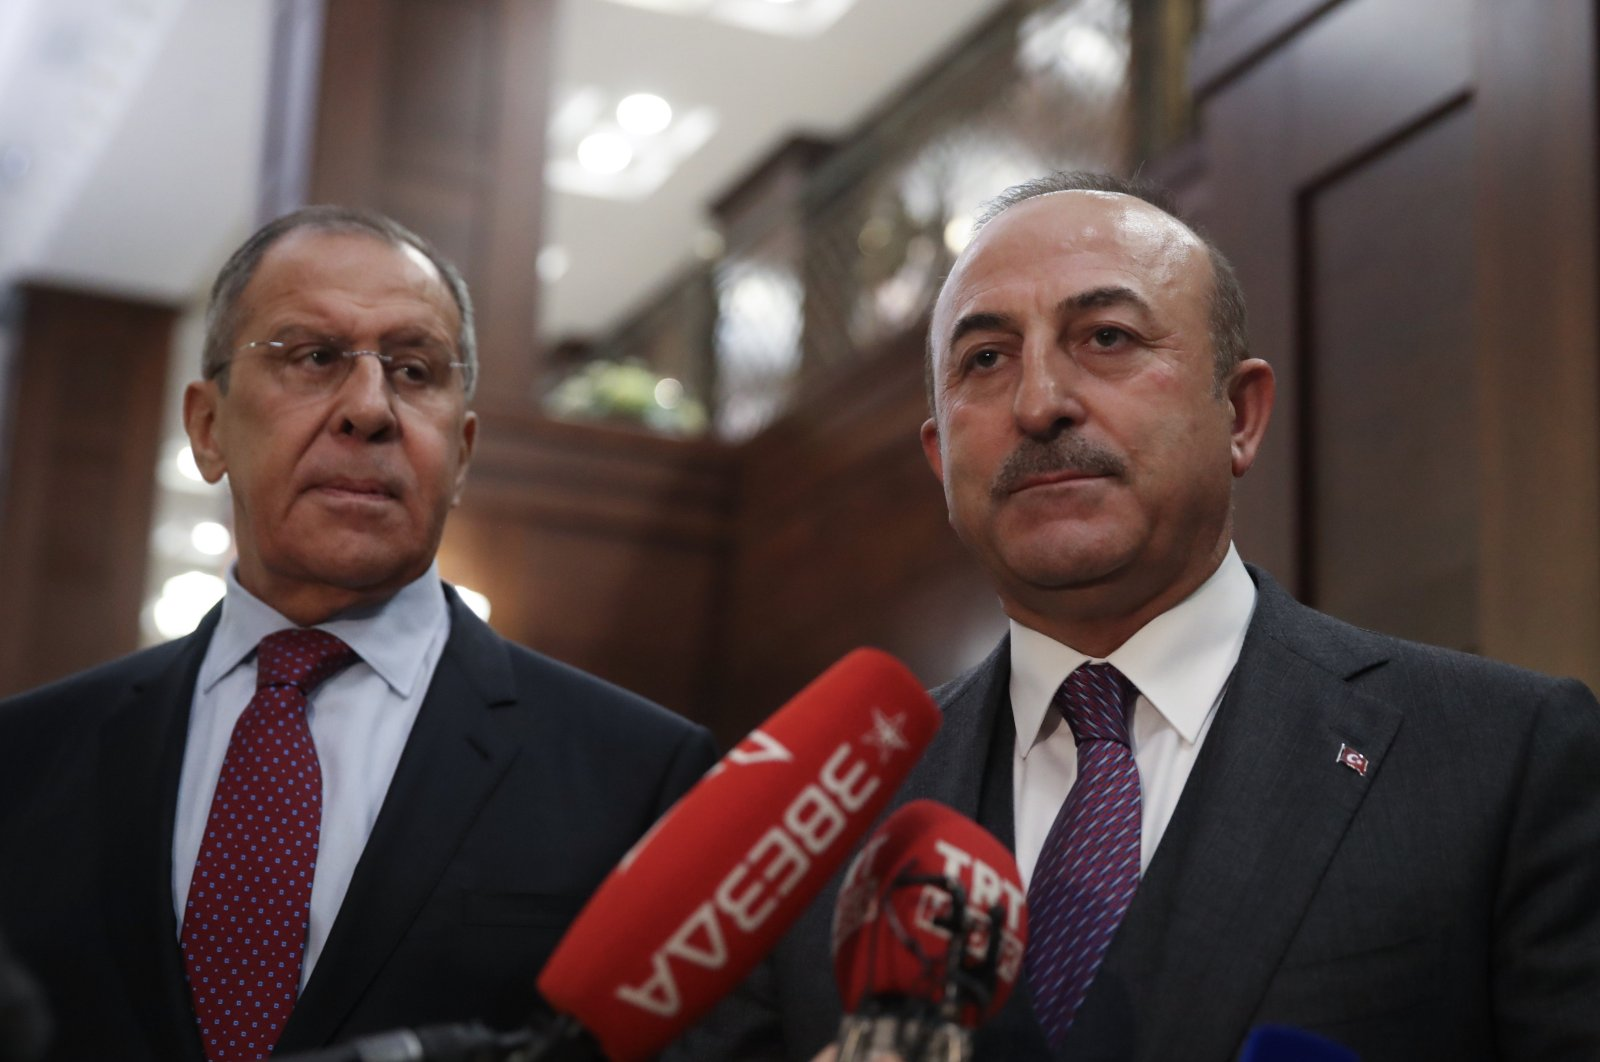 Foreign Minister Mevlüt Çavuşoğlu (R) and Russian Foreign Minister Sergey Lavrov address journalists following a meeting, Dec. 30, 2018. (AA File Photo)